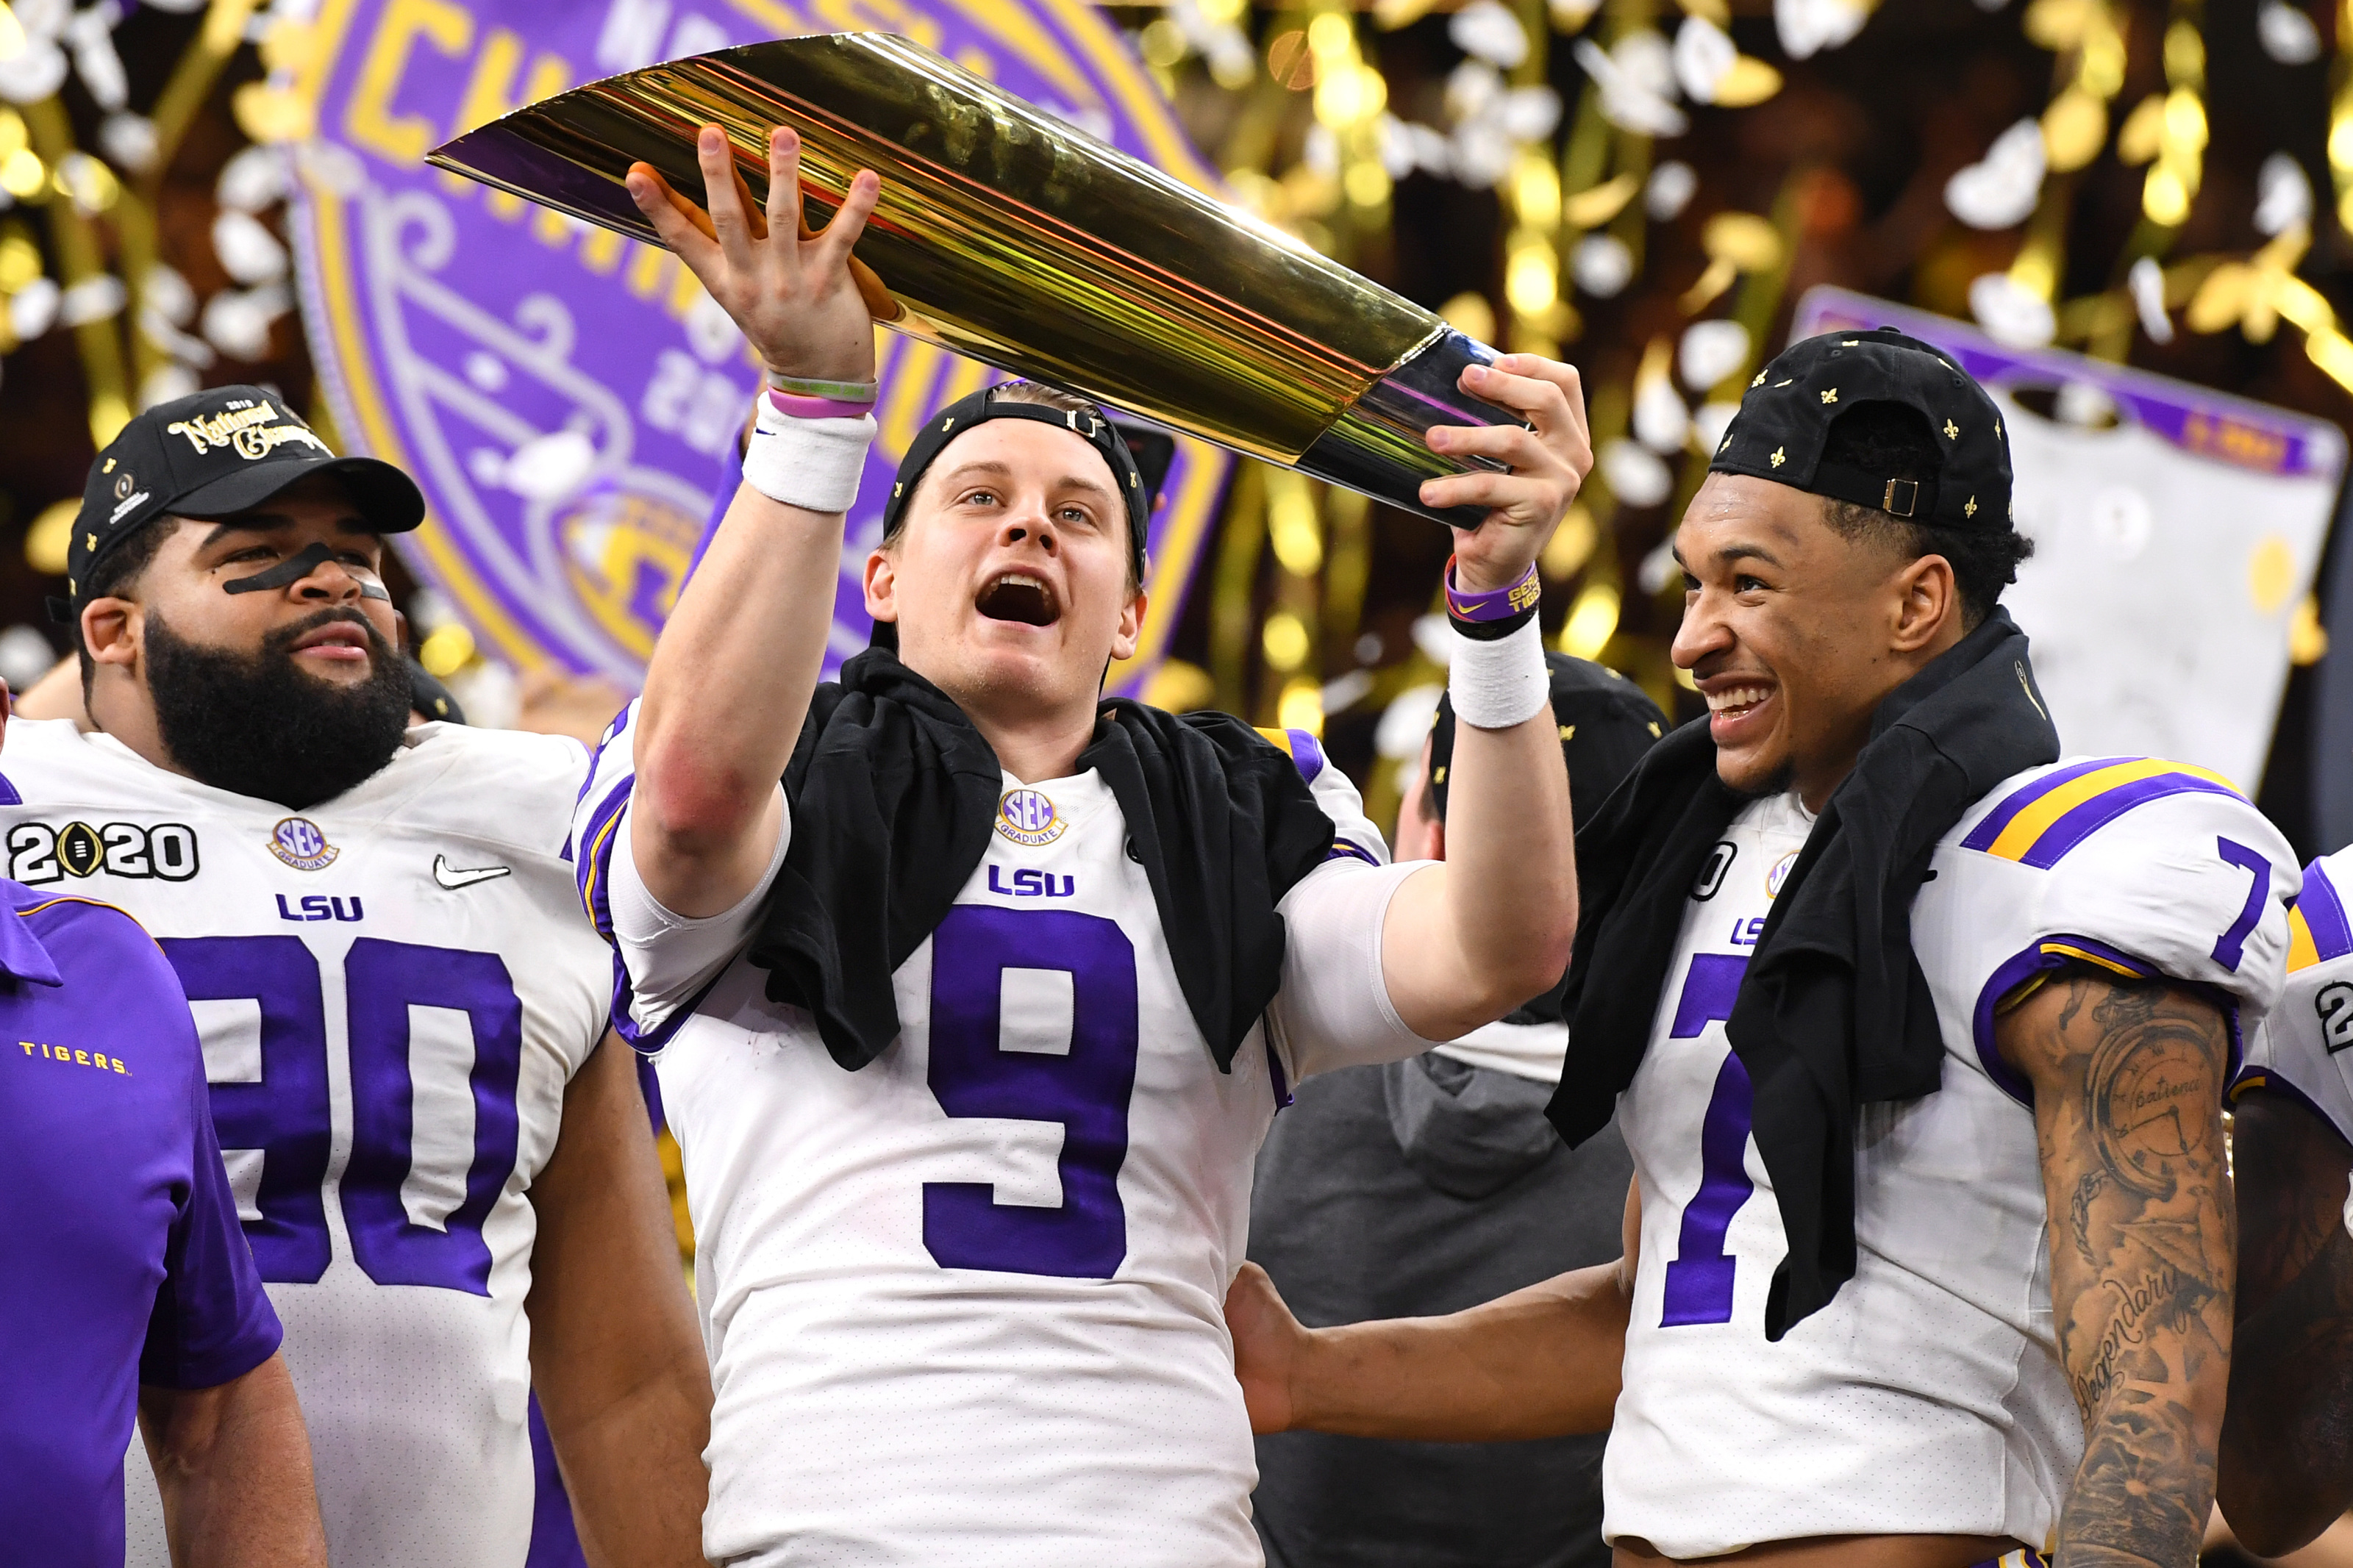 So what if Joe Burrow has tiny hands. They were big enough to carry LSU, Heisman